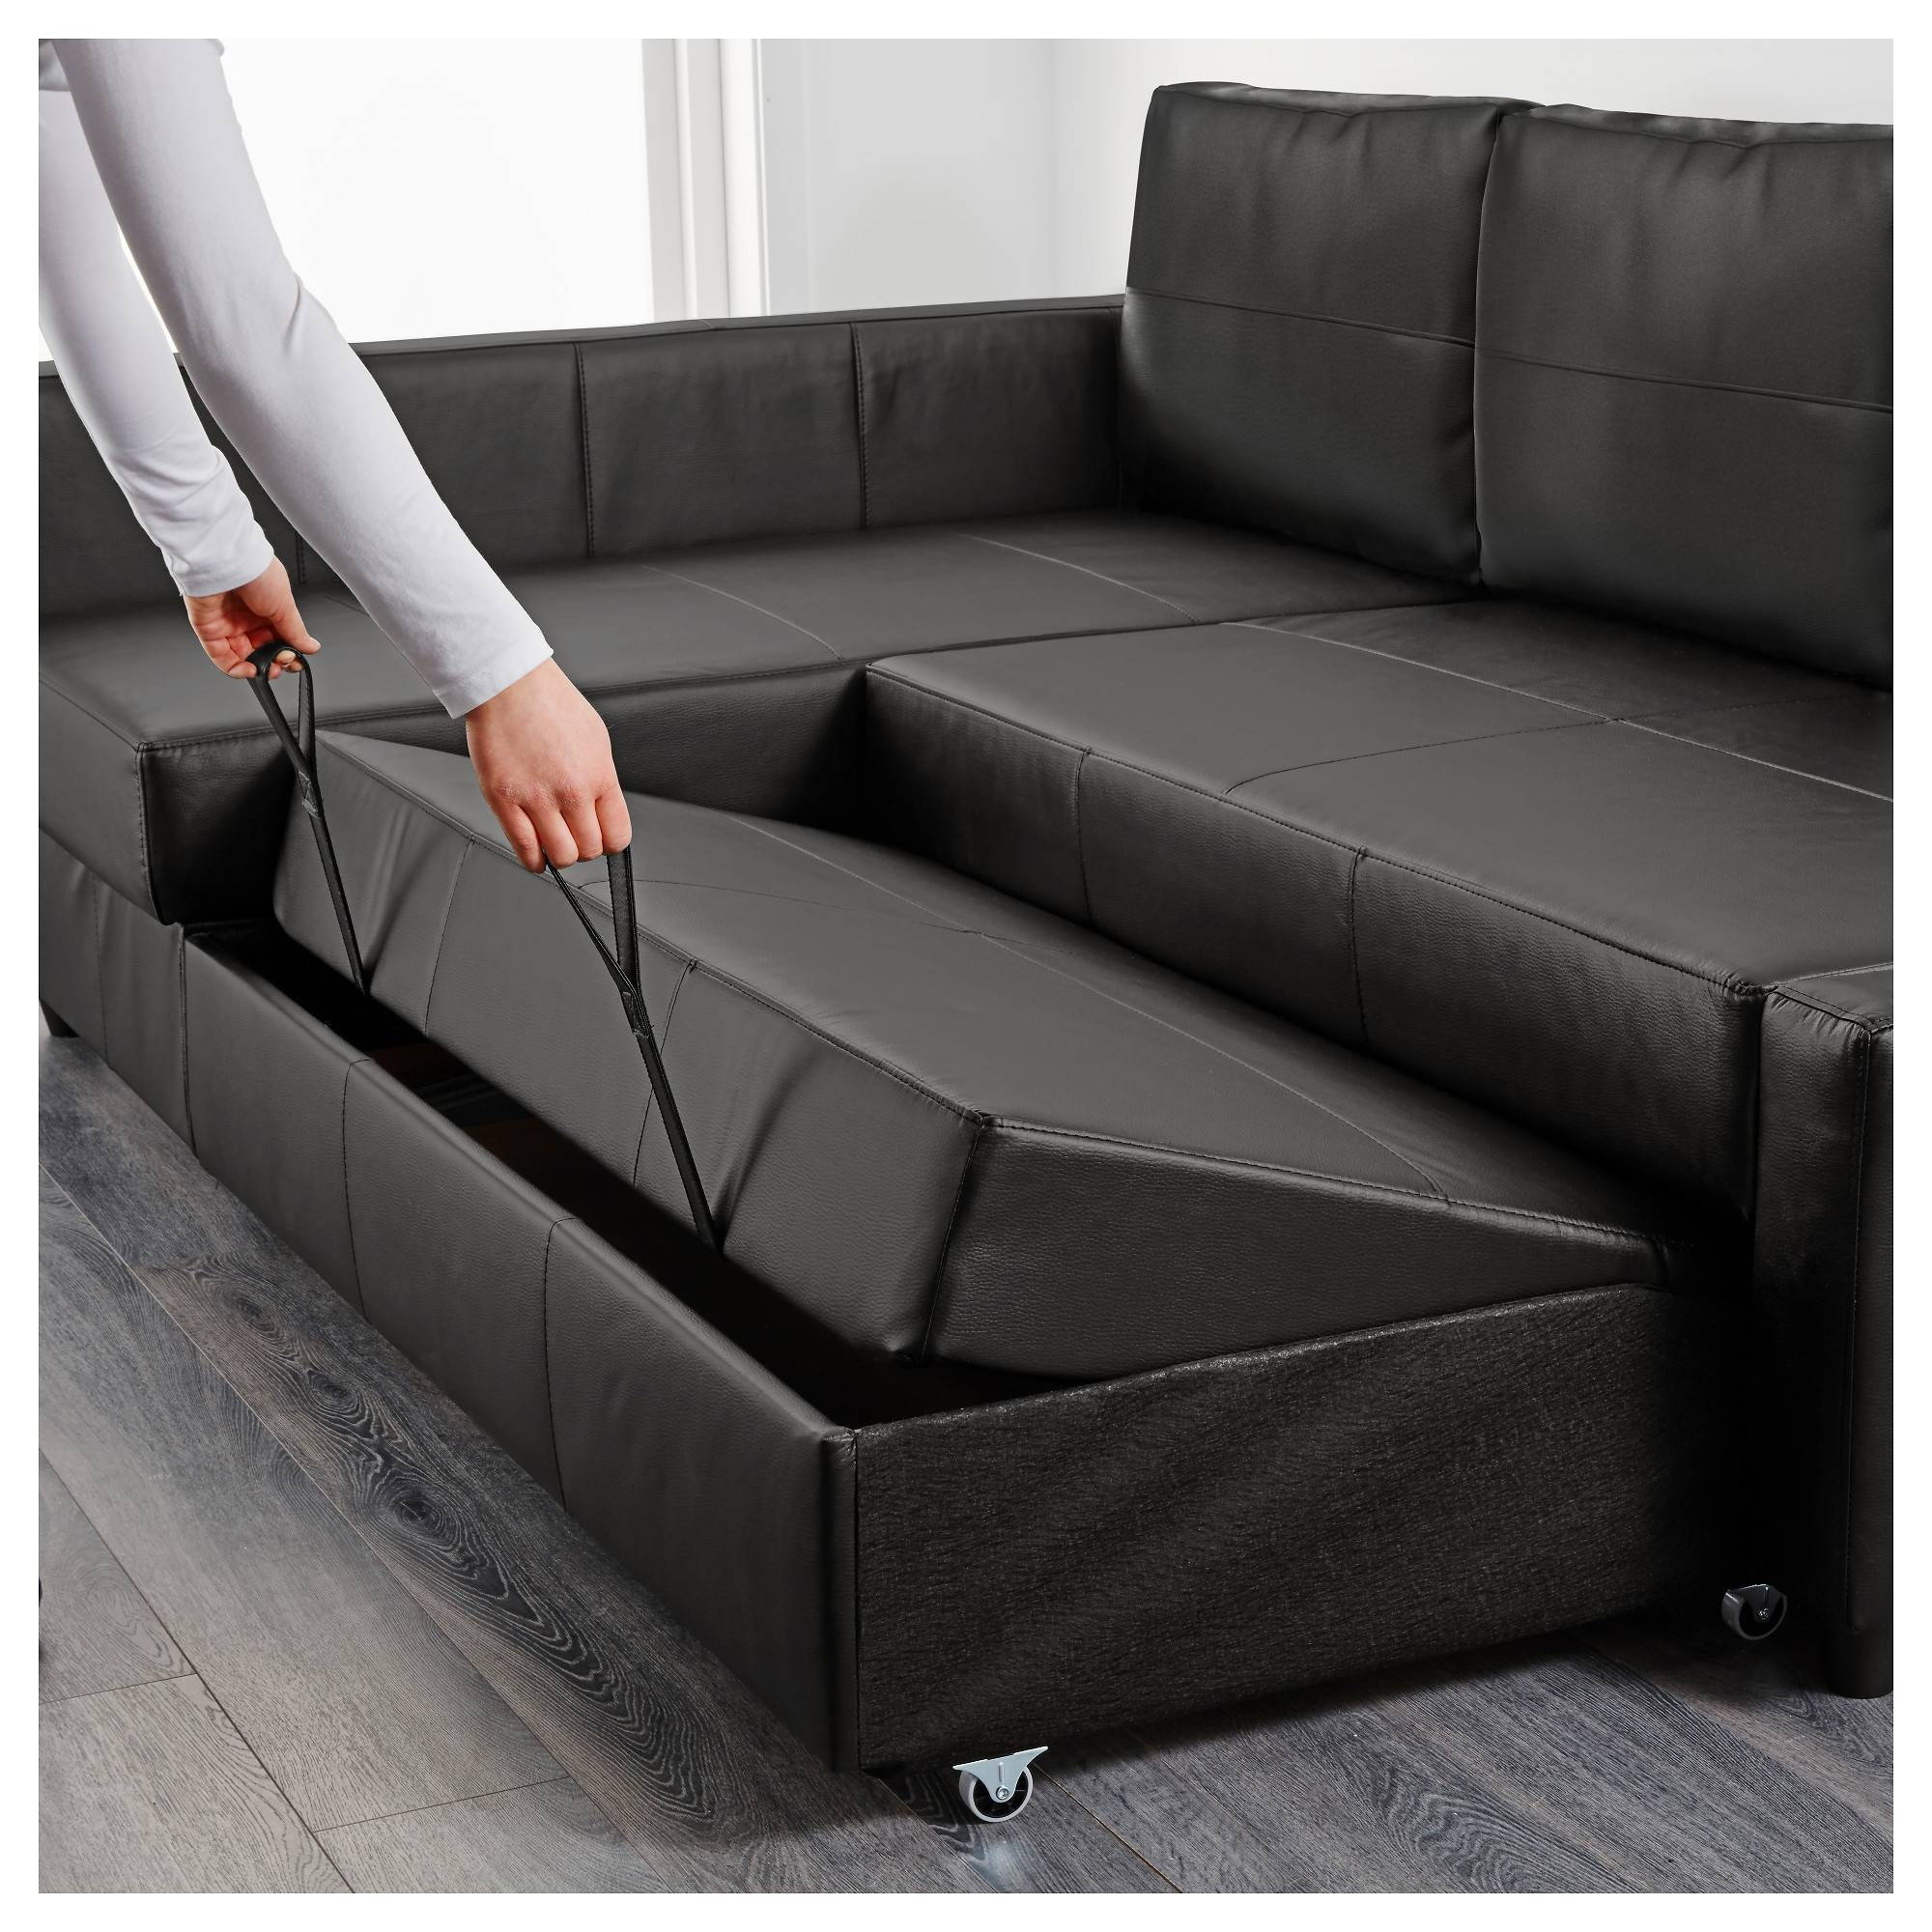 Friheten Sleeper Sectional,3 Seat W/storage - Skiftebo Dark Gray throughout Ikea Sofa Storage (Image 10 of 25)